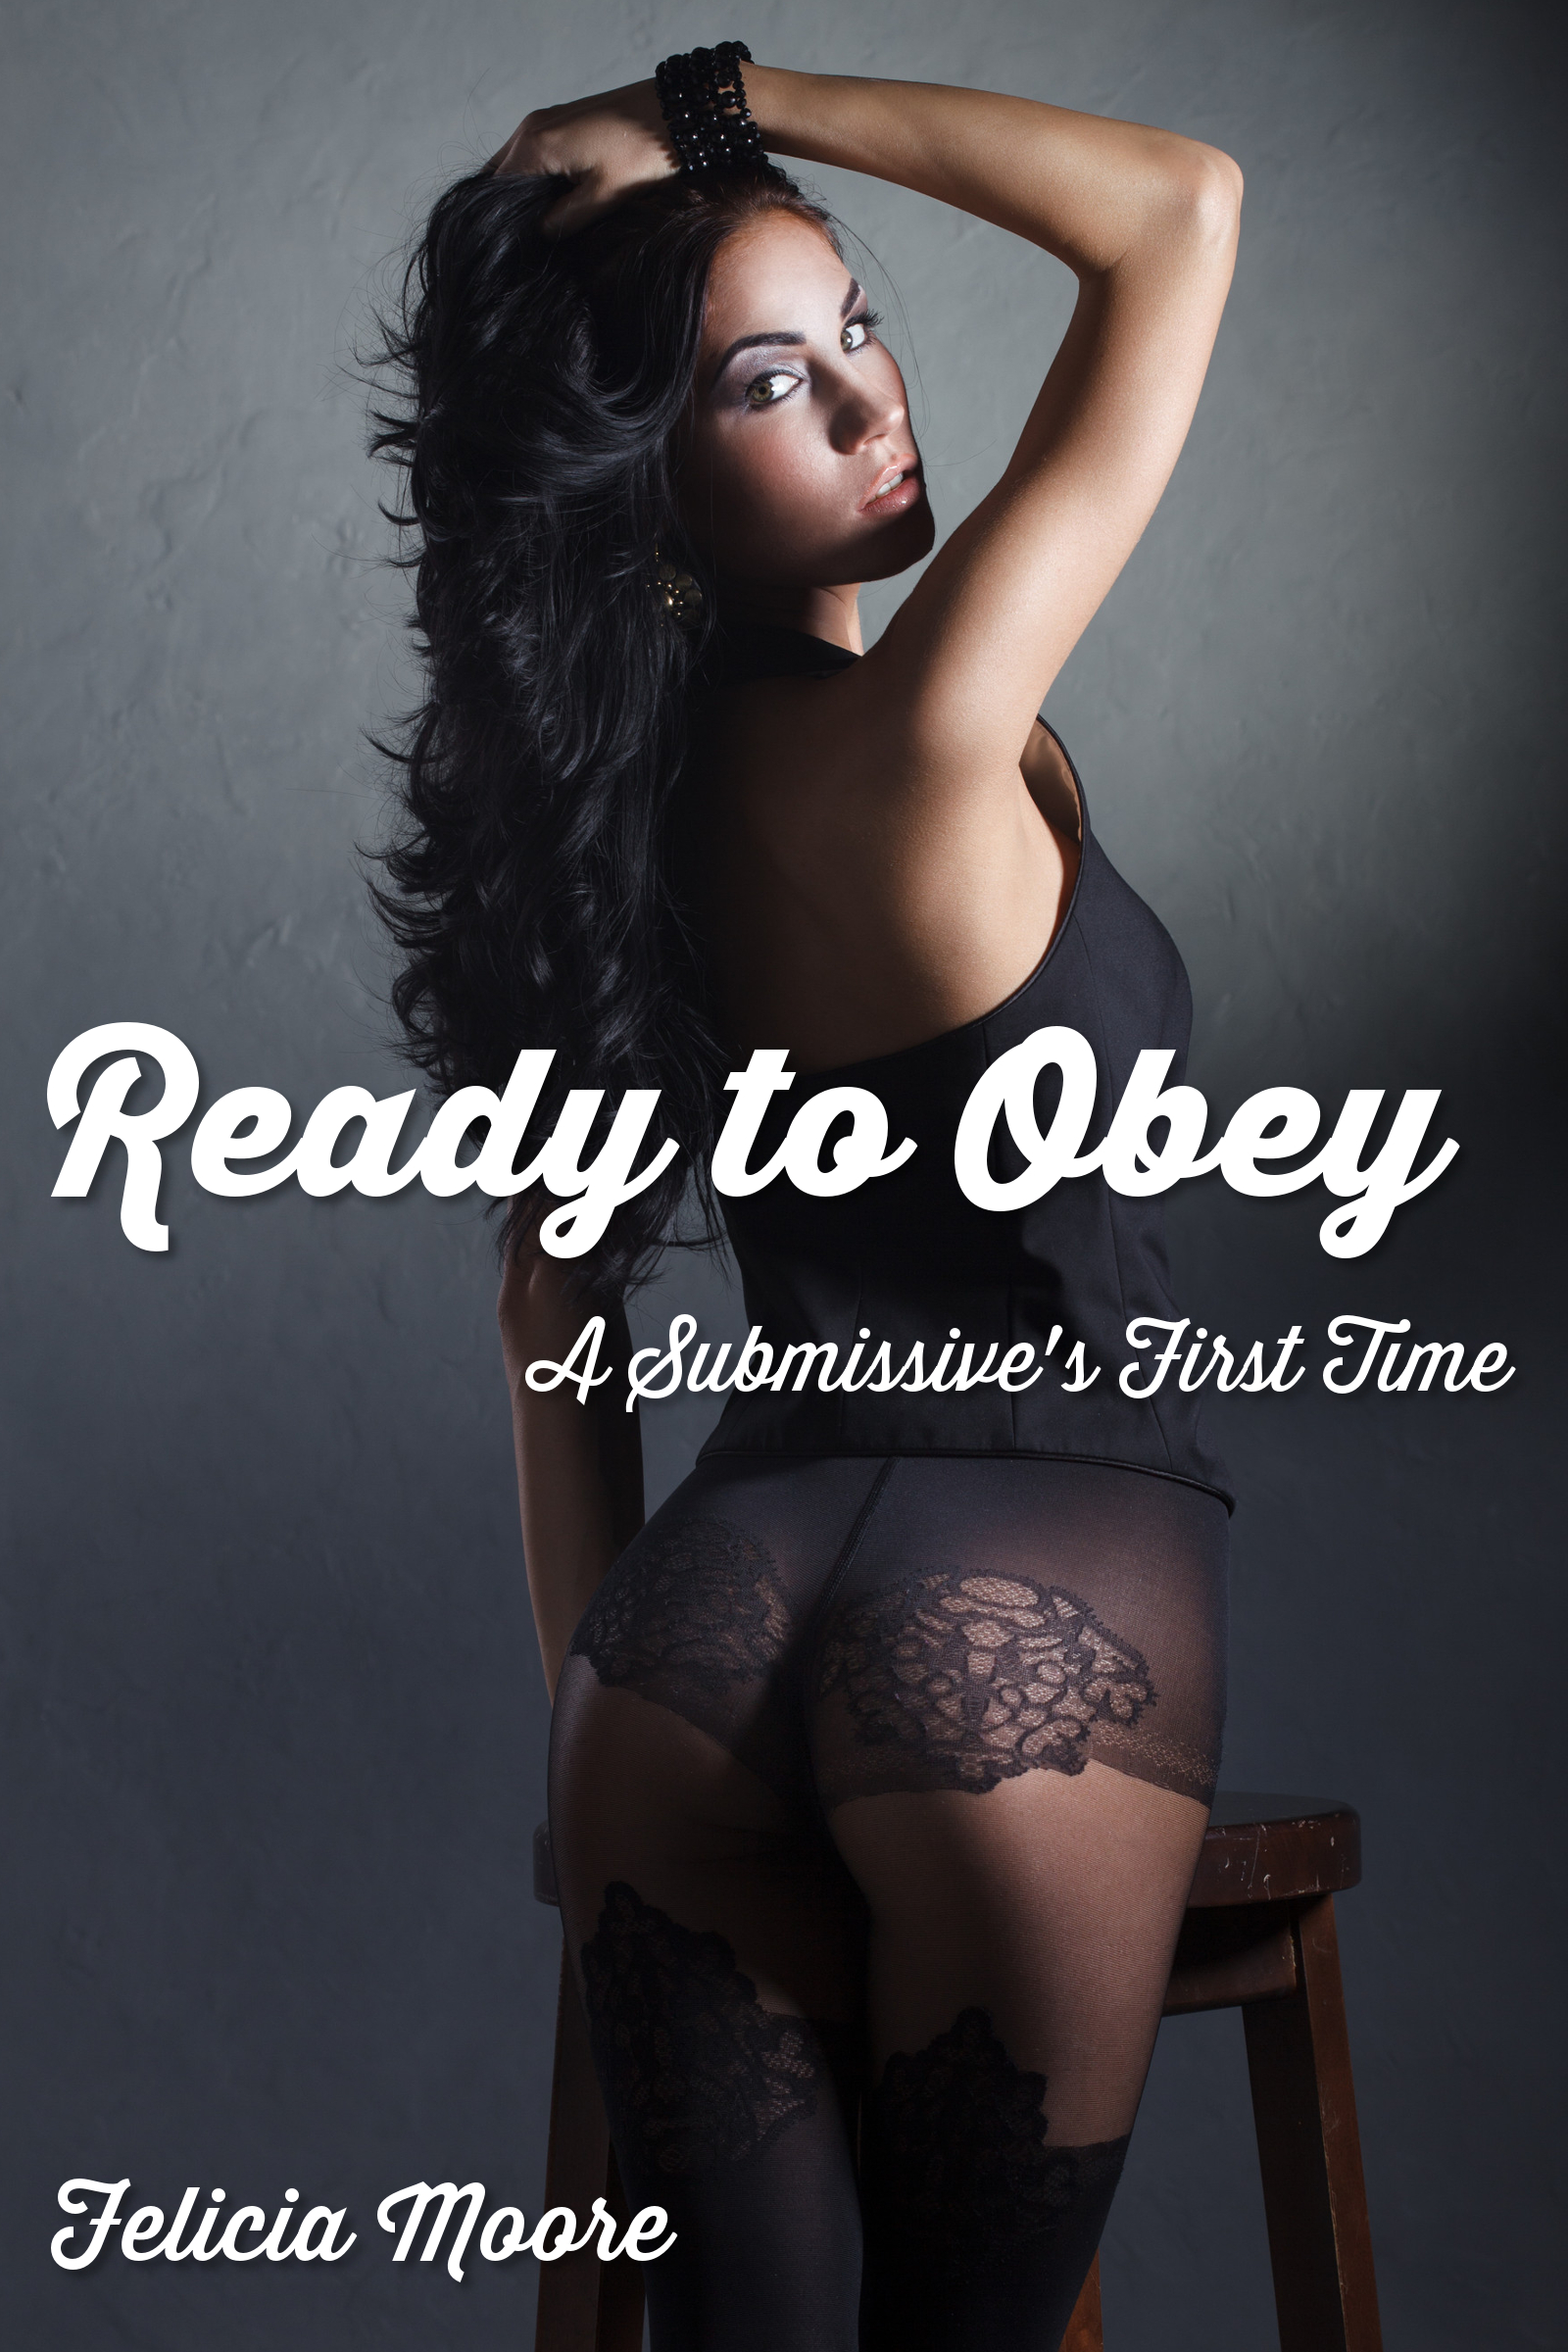 Felicia Moore - Ready to Obey (A Submissive's First Time)